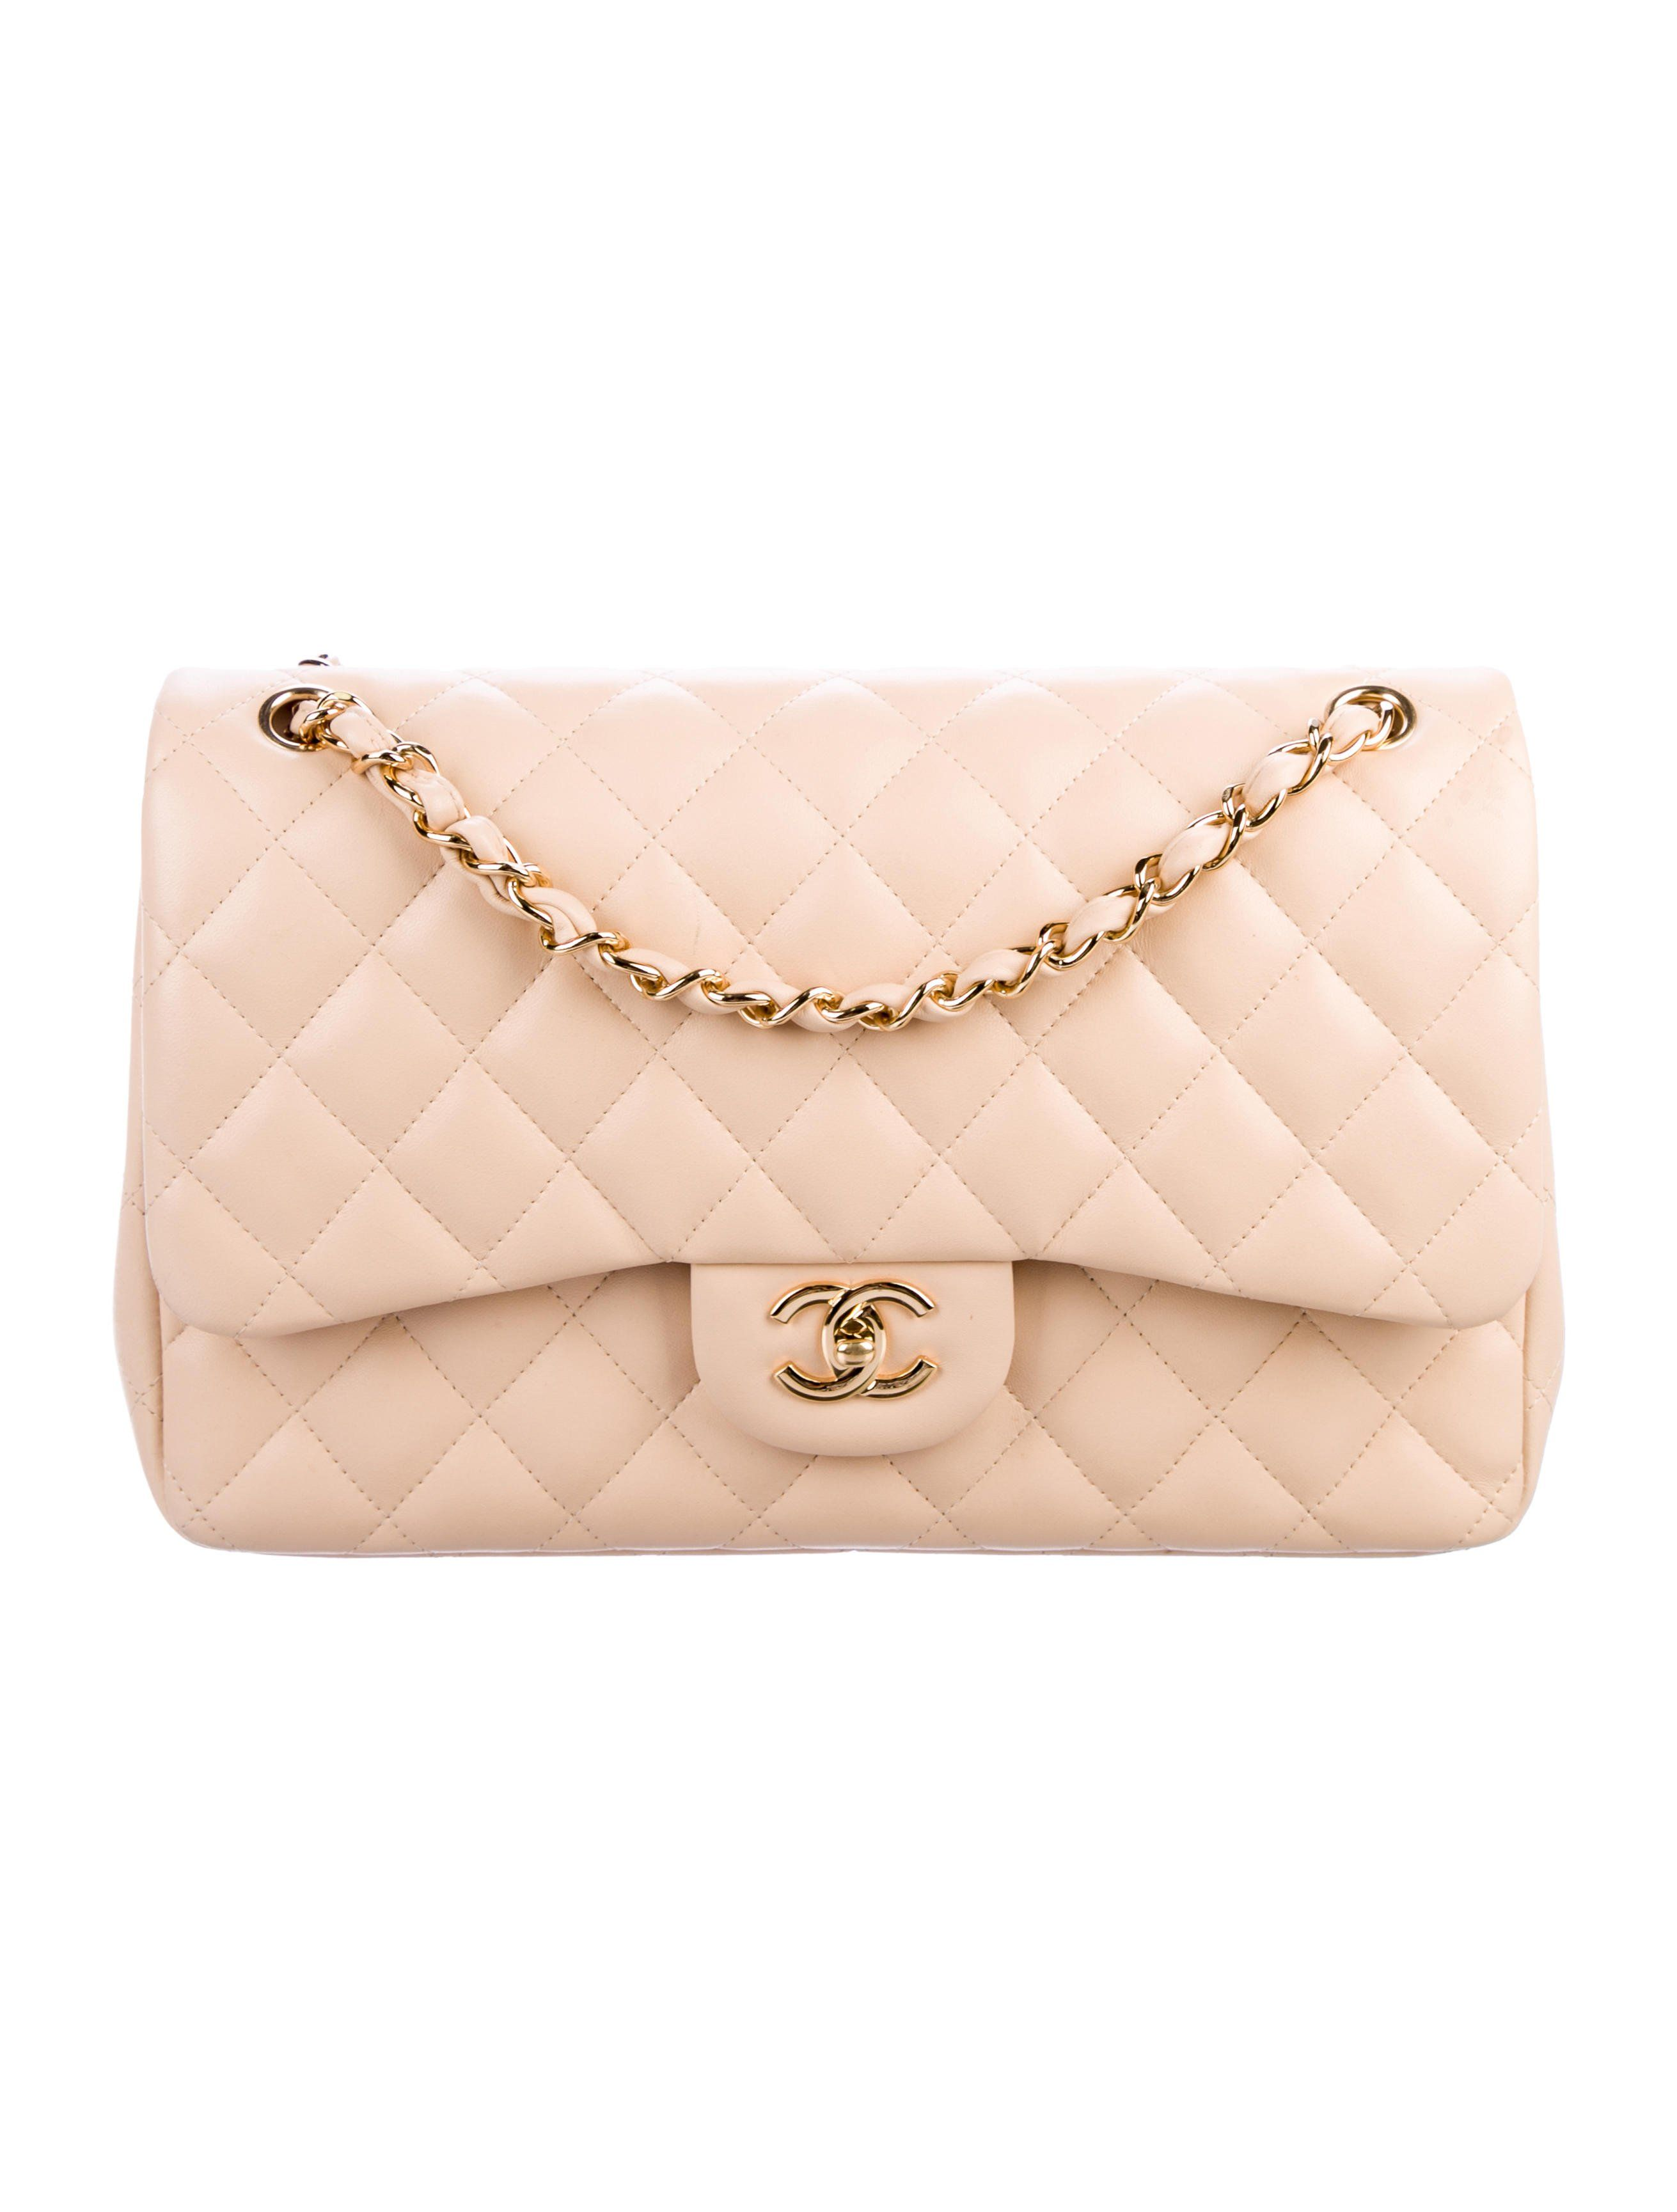 6219ce9abbdf9e Creme quilted lambskin Chanel Jumbo Double Flap bag with gold-tone  hardware, convertible shoulder